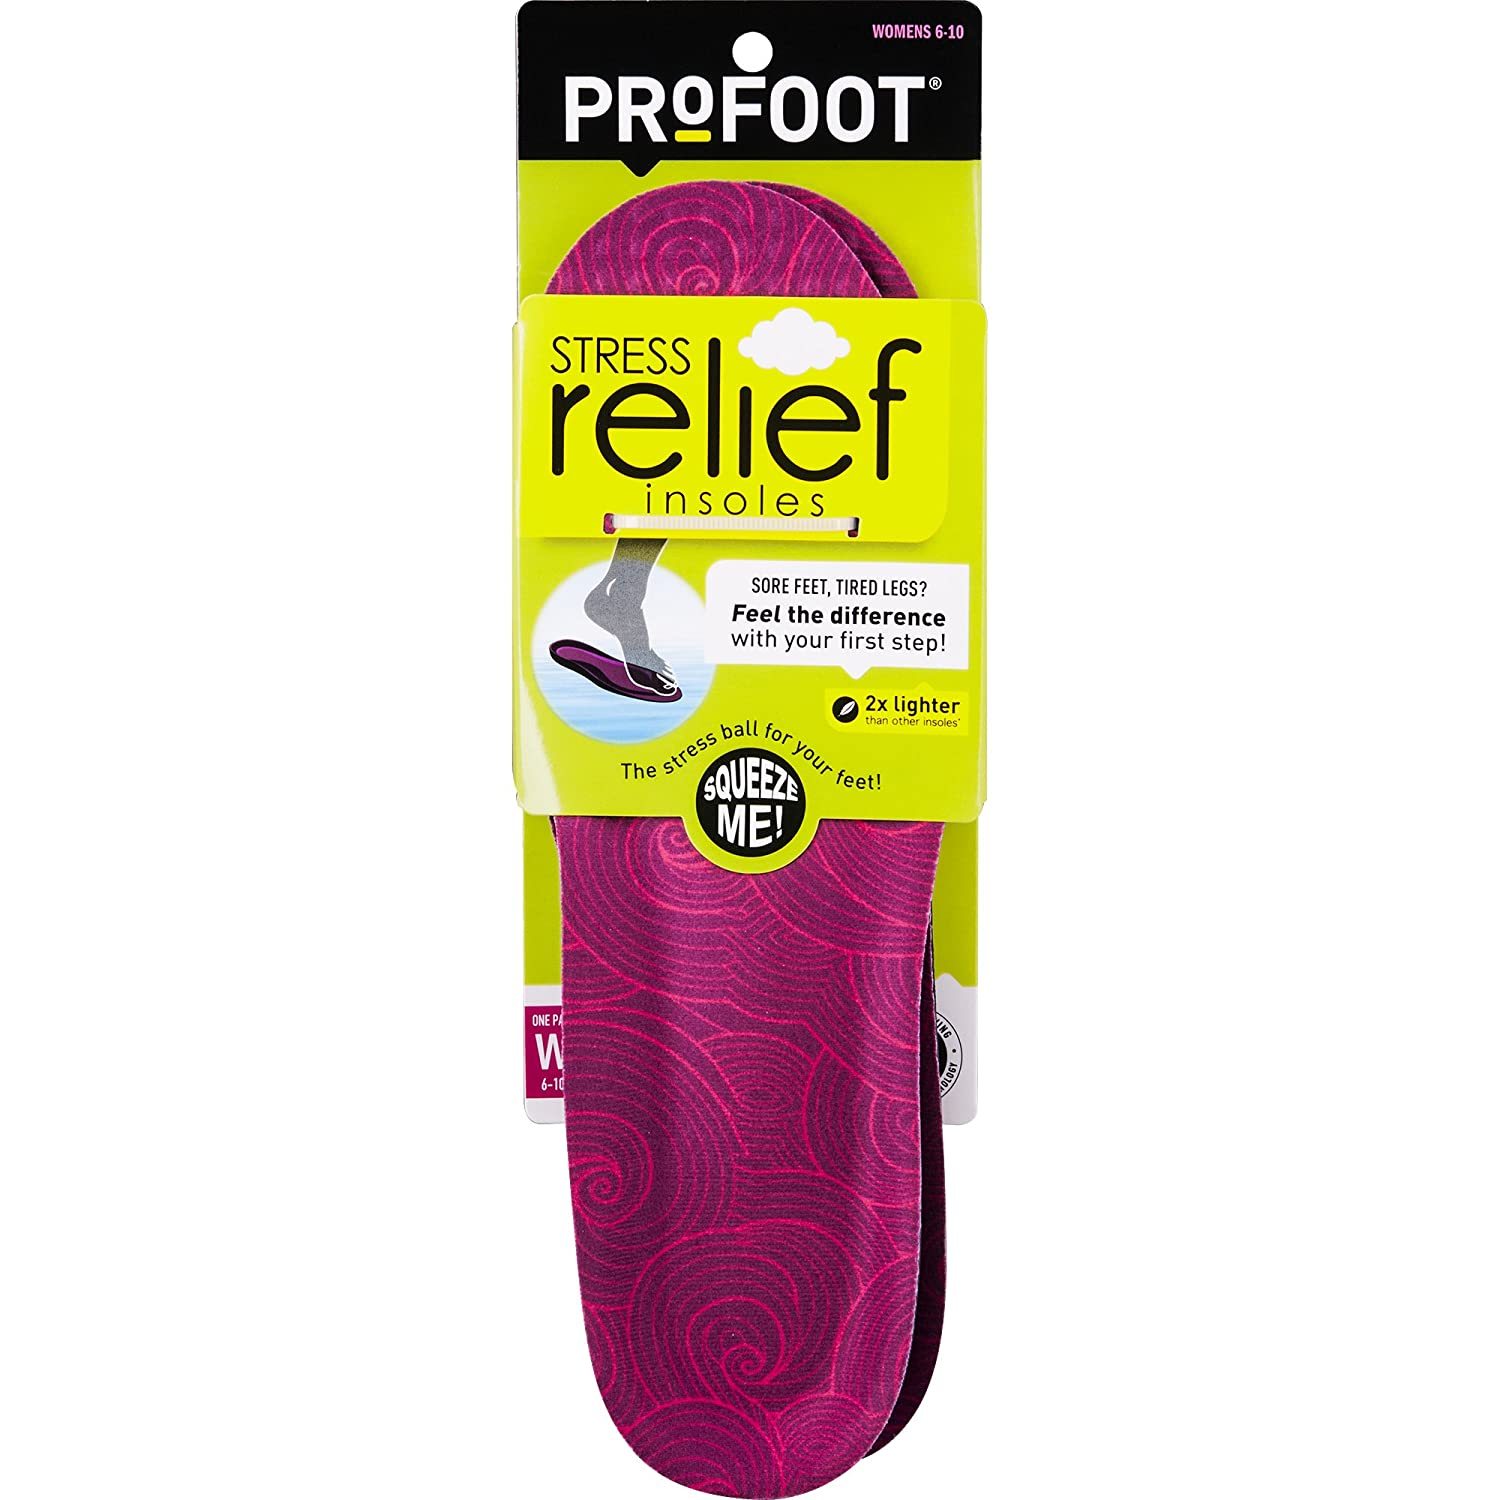 deb240d0059b Amazon.com  PROFOOT Stress Relief Insole